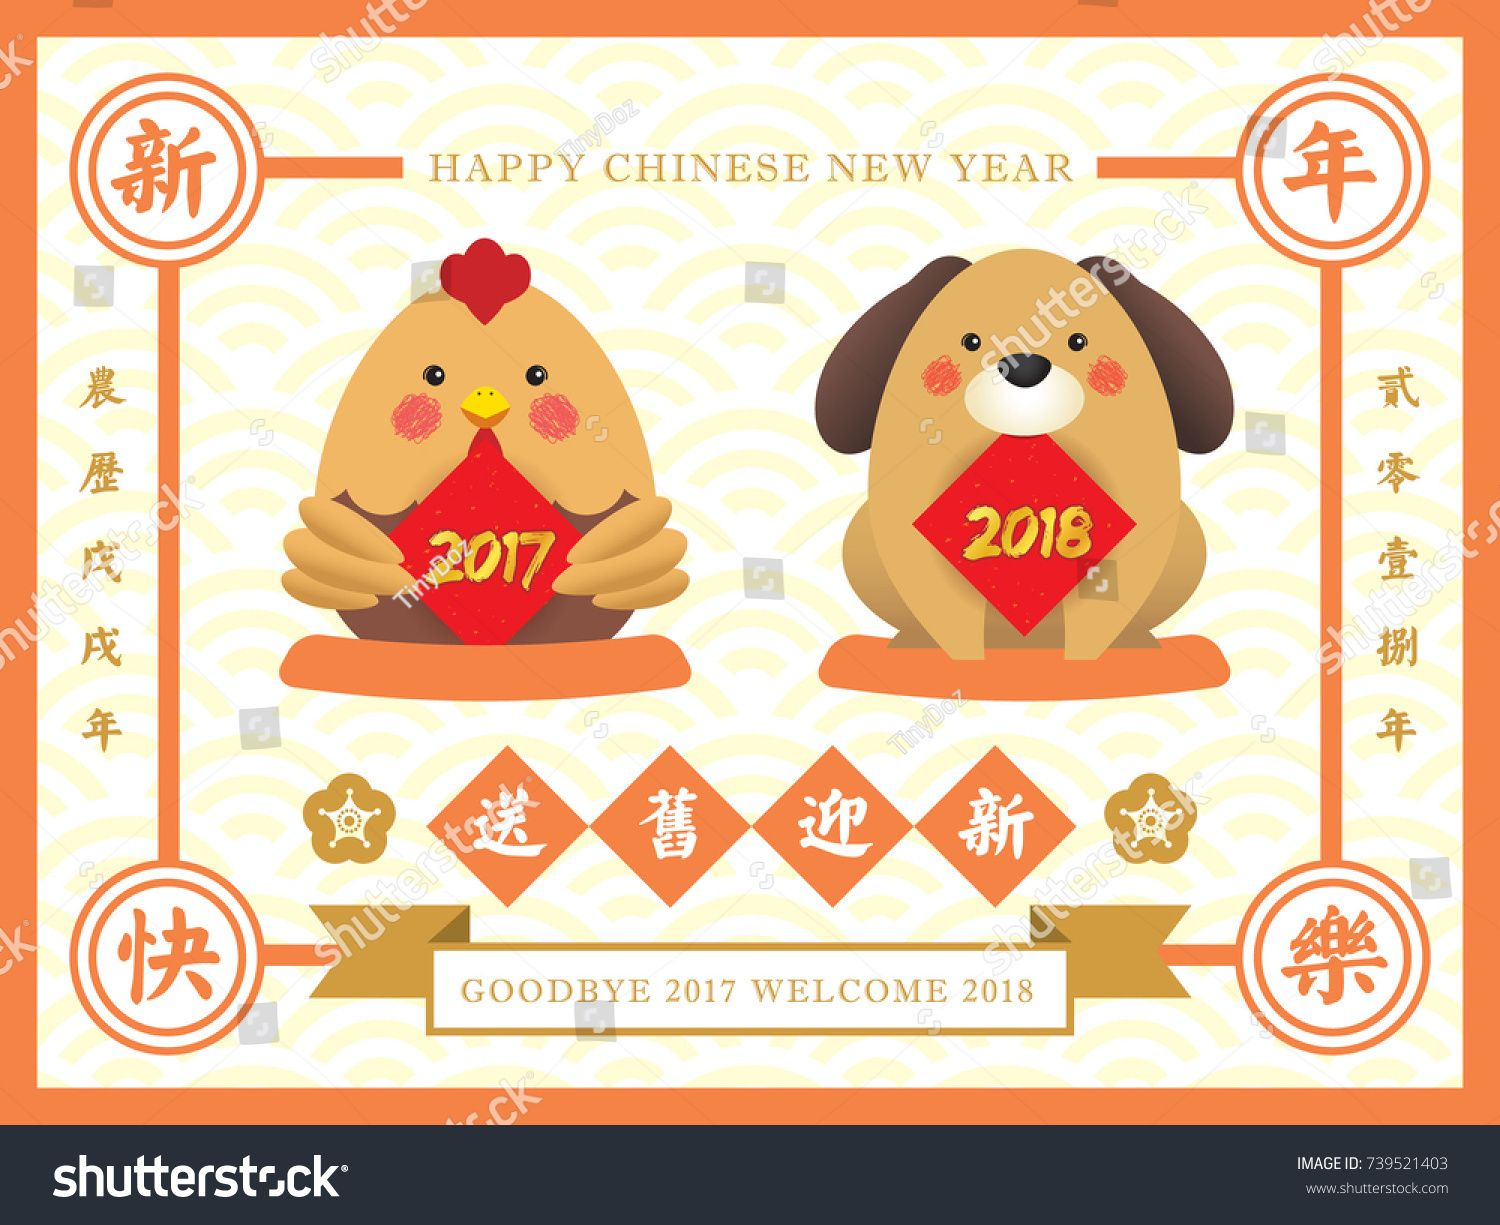 chinese new year greeting card with cute cartoon chicken and dog with couplet in vintage style design caption send off the old year 2017 and welcome the